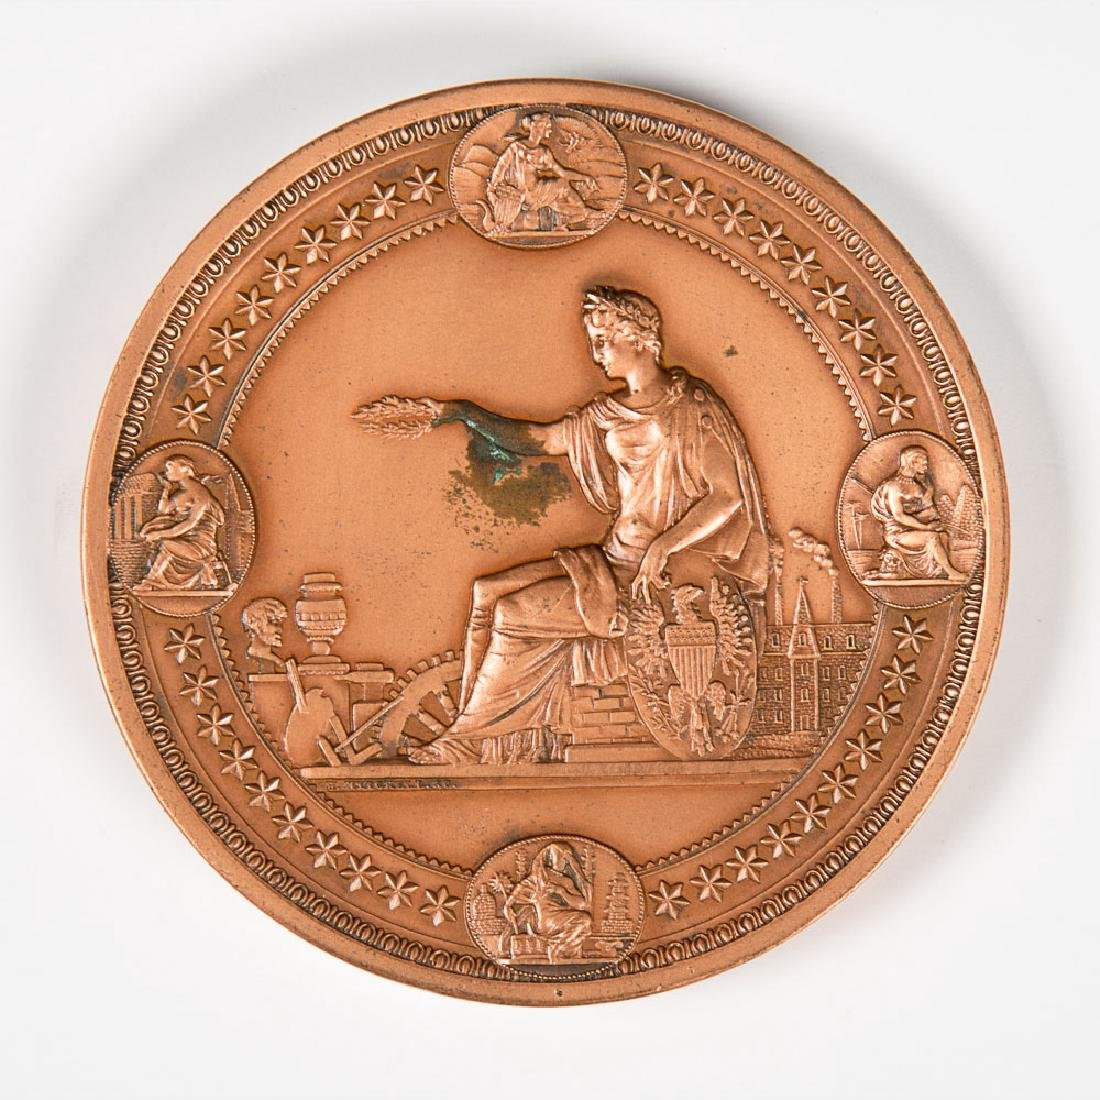 A Copper Medal by H. Mitchell from the Centennial